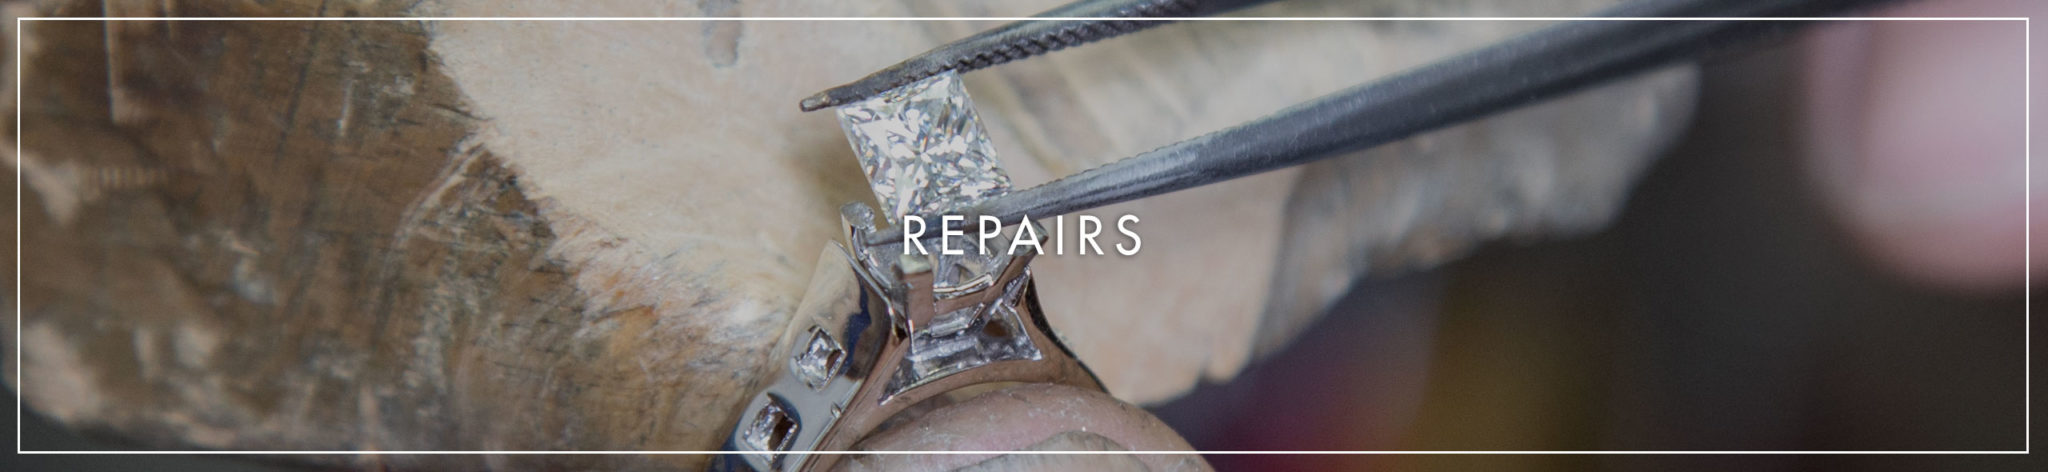 Learn more about our Jewellery Repair Services